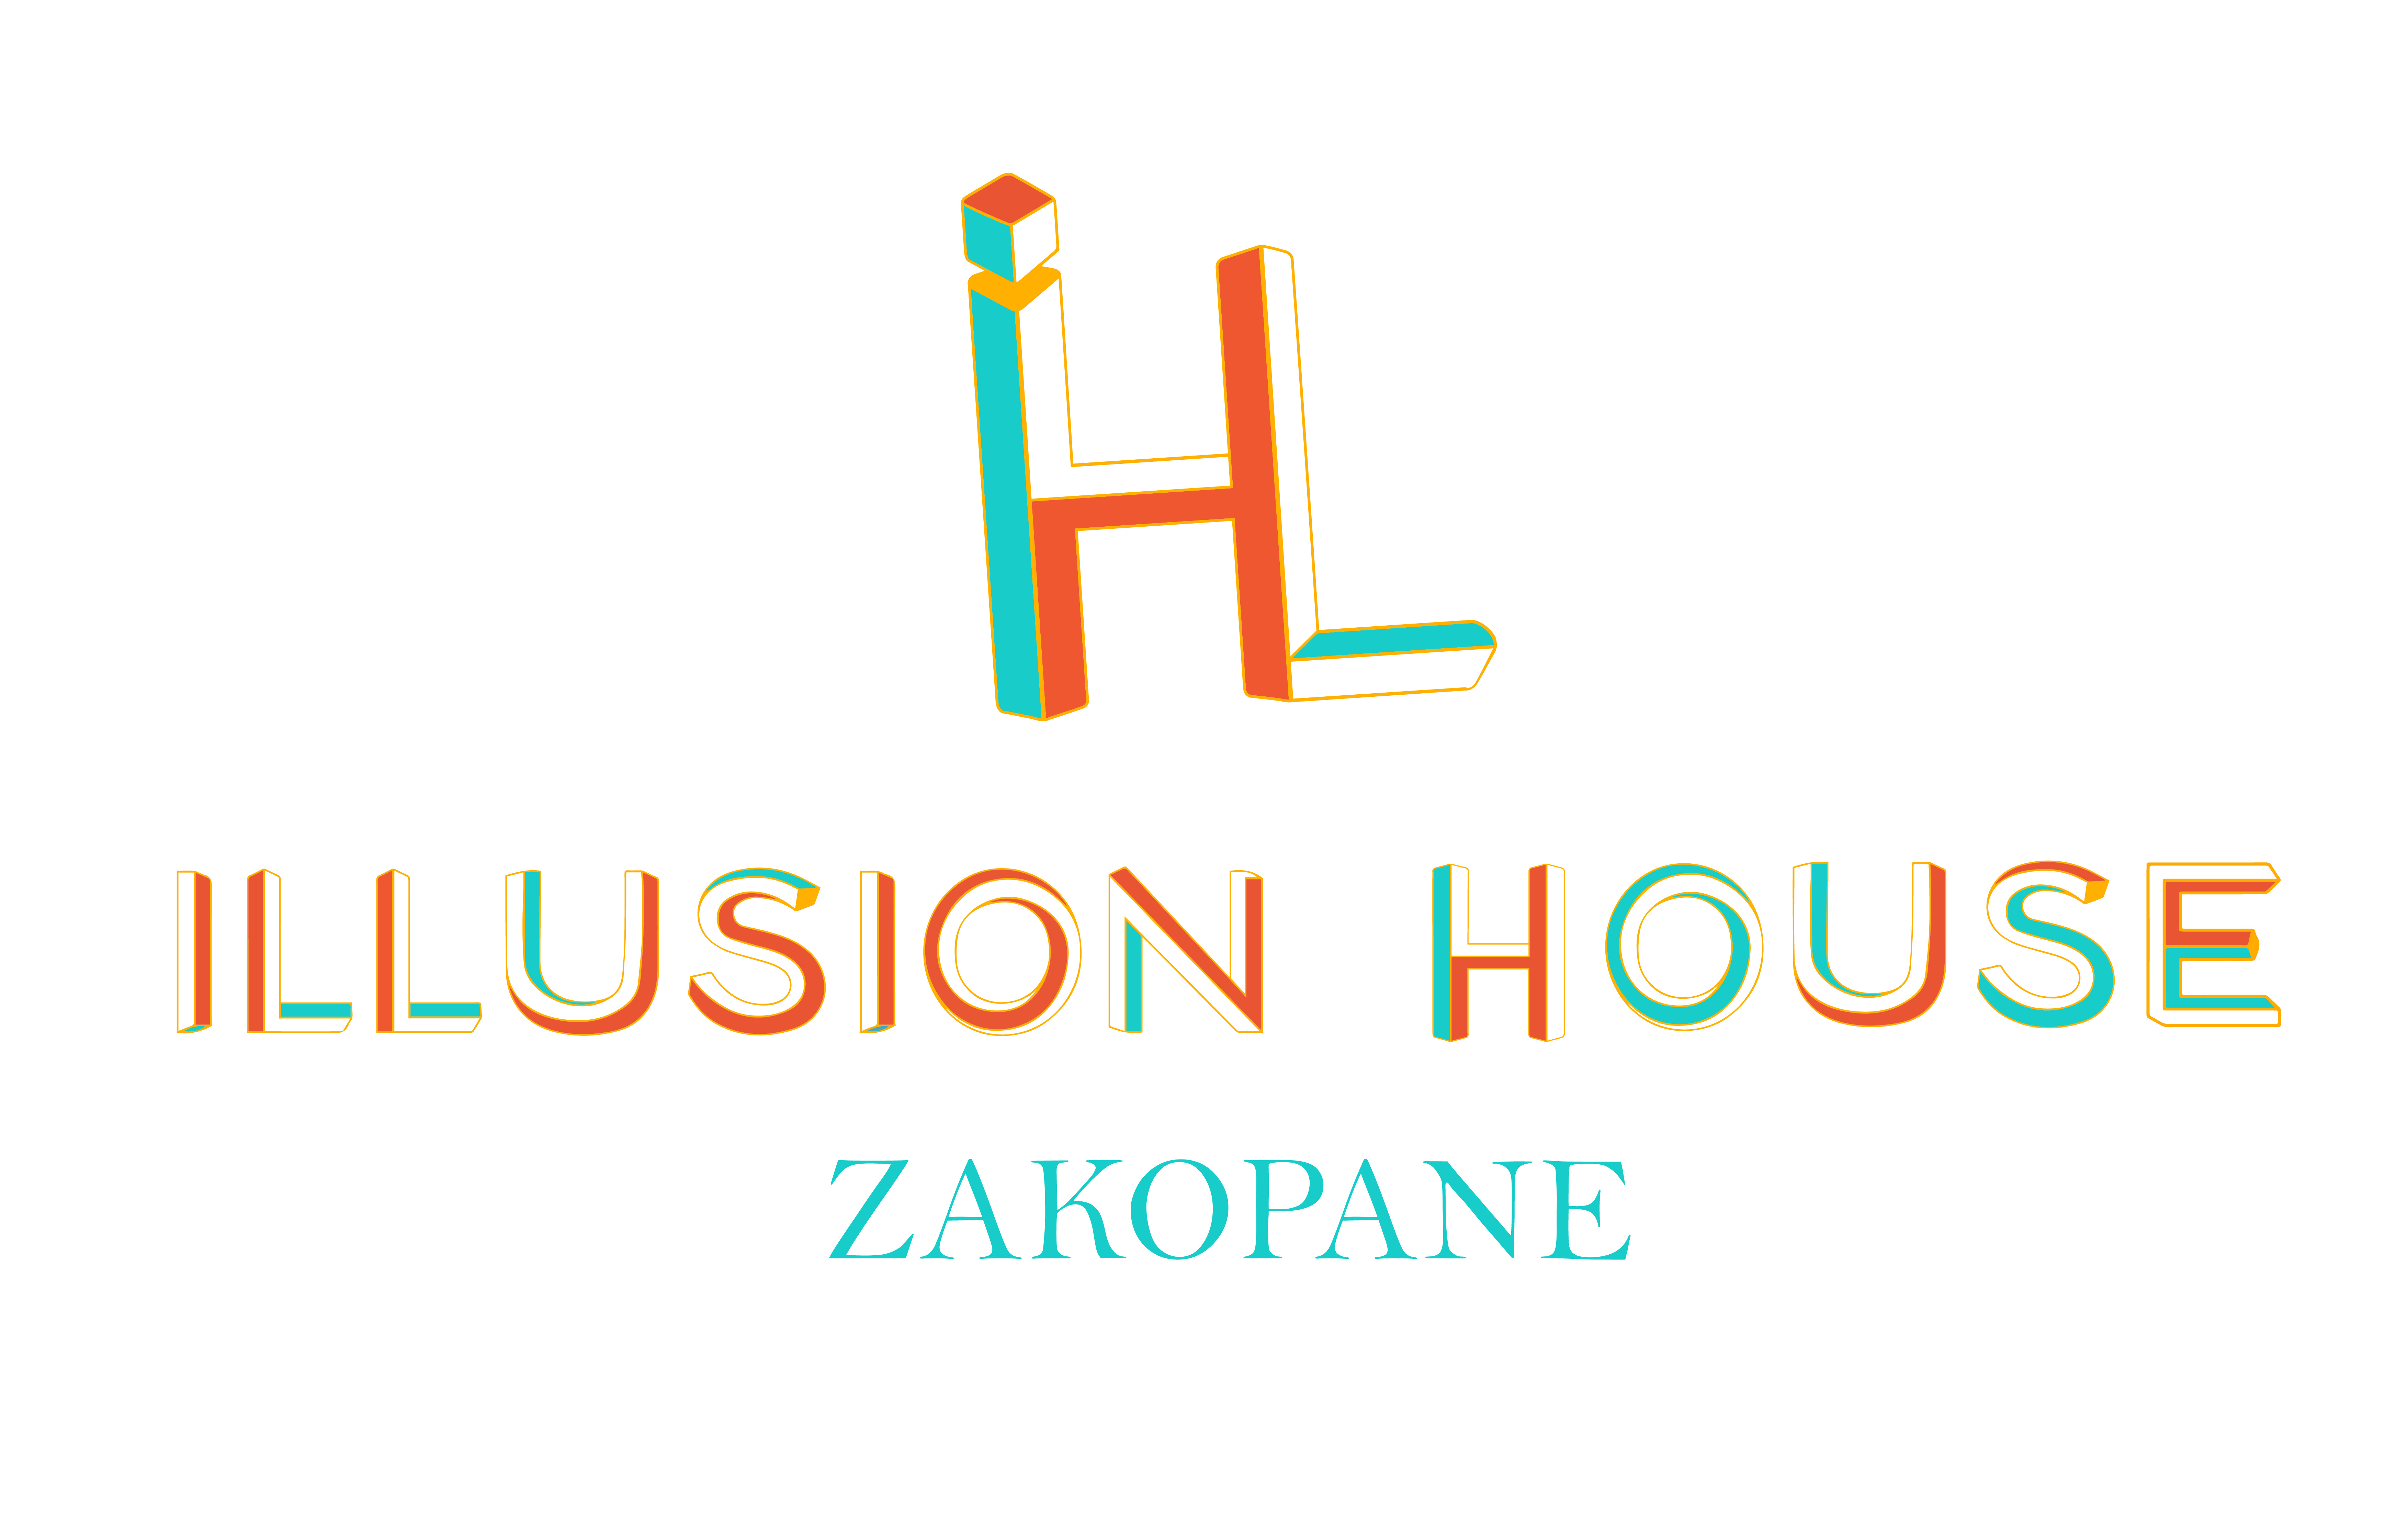 ILLUSION HOUSE ZAKOPANE